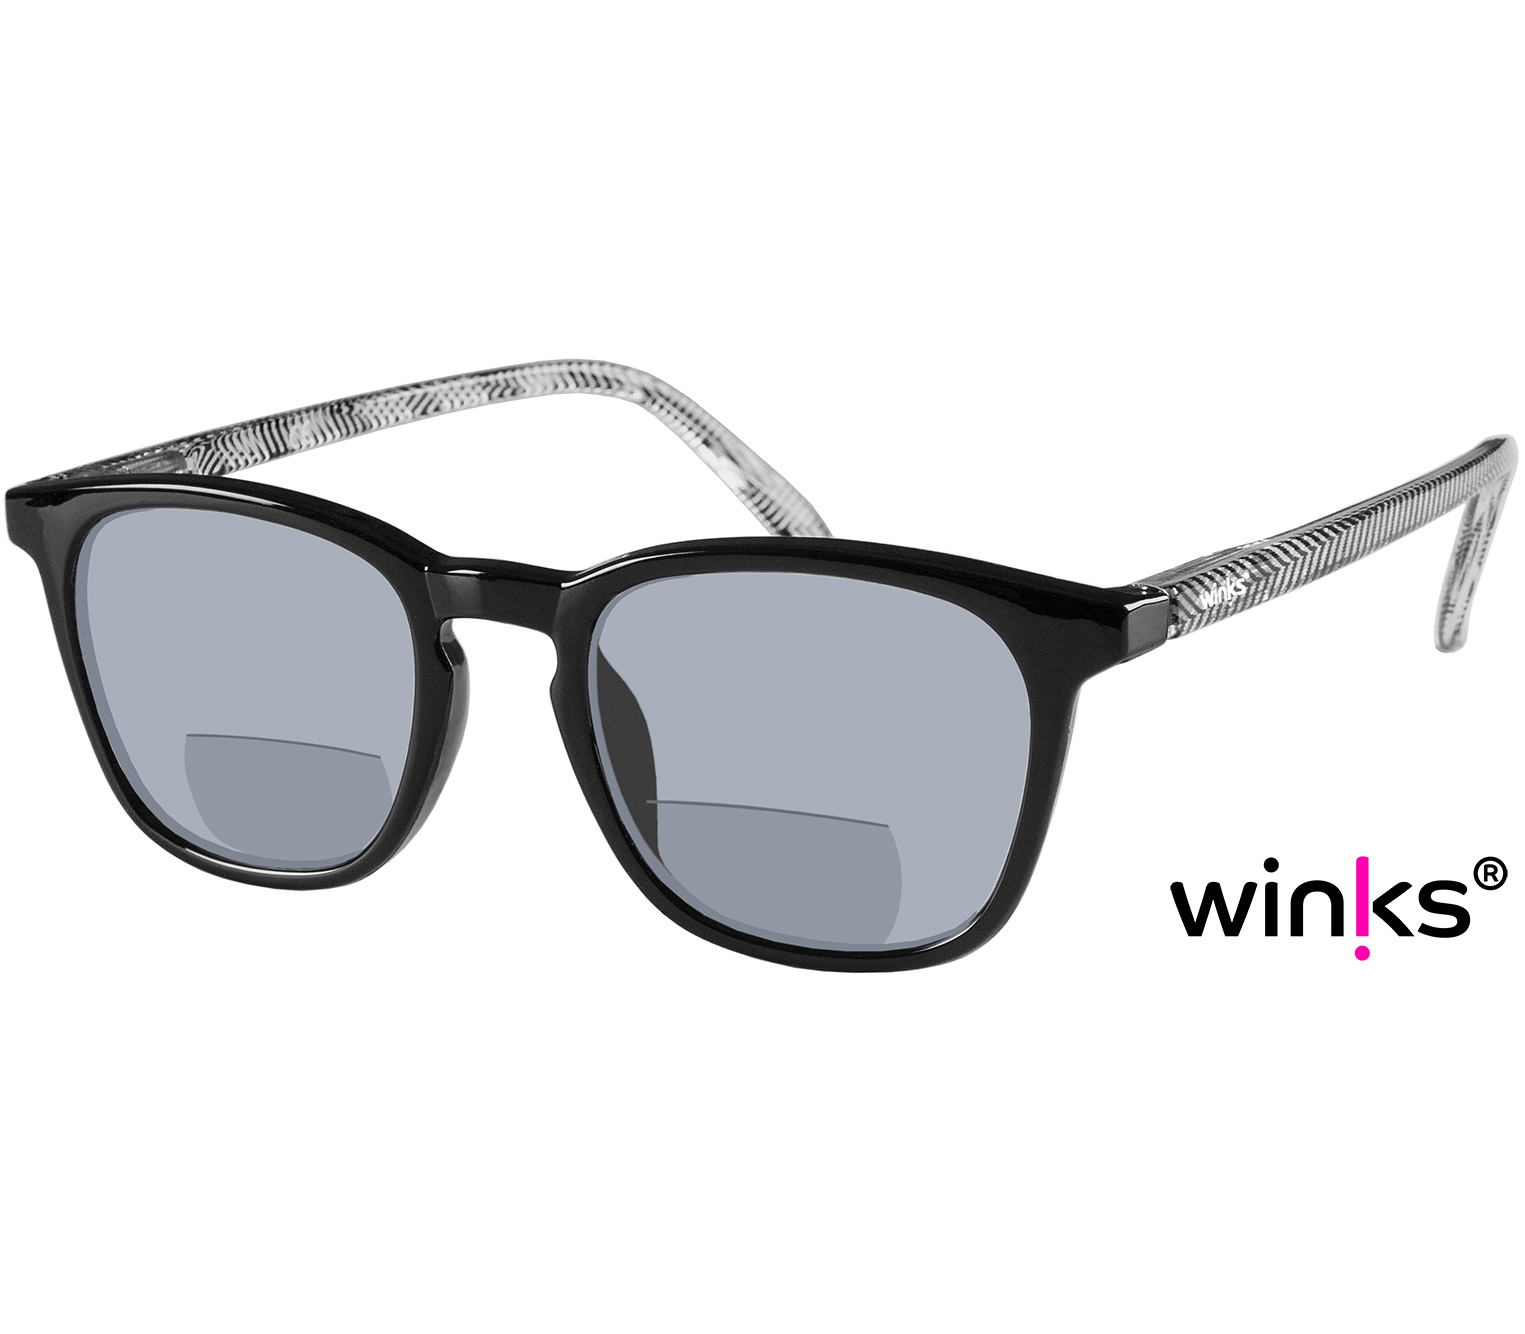 Main Image (Angle) - Capri (Black) Bifocal Sun Readers